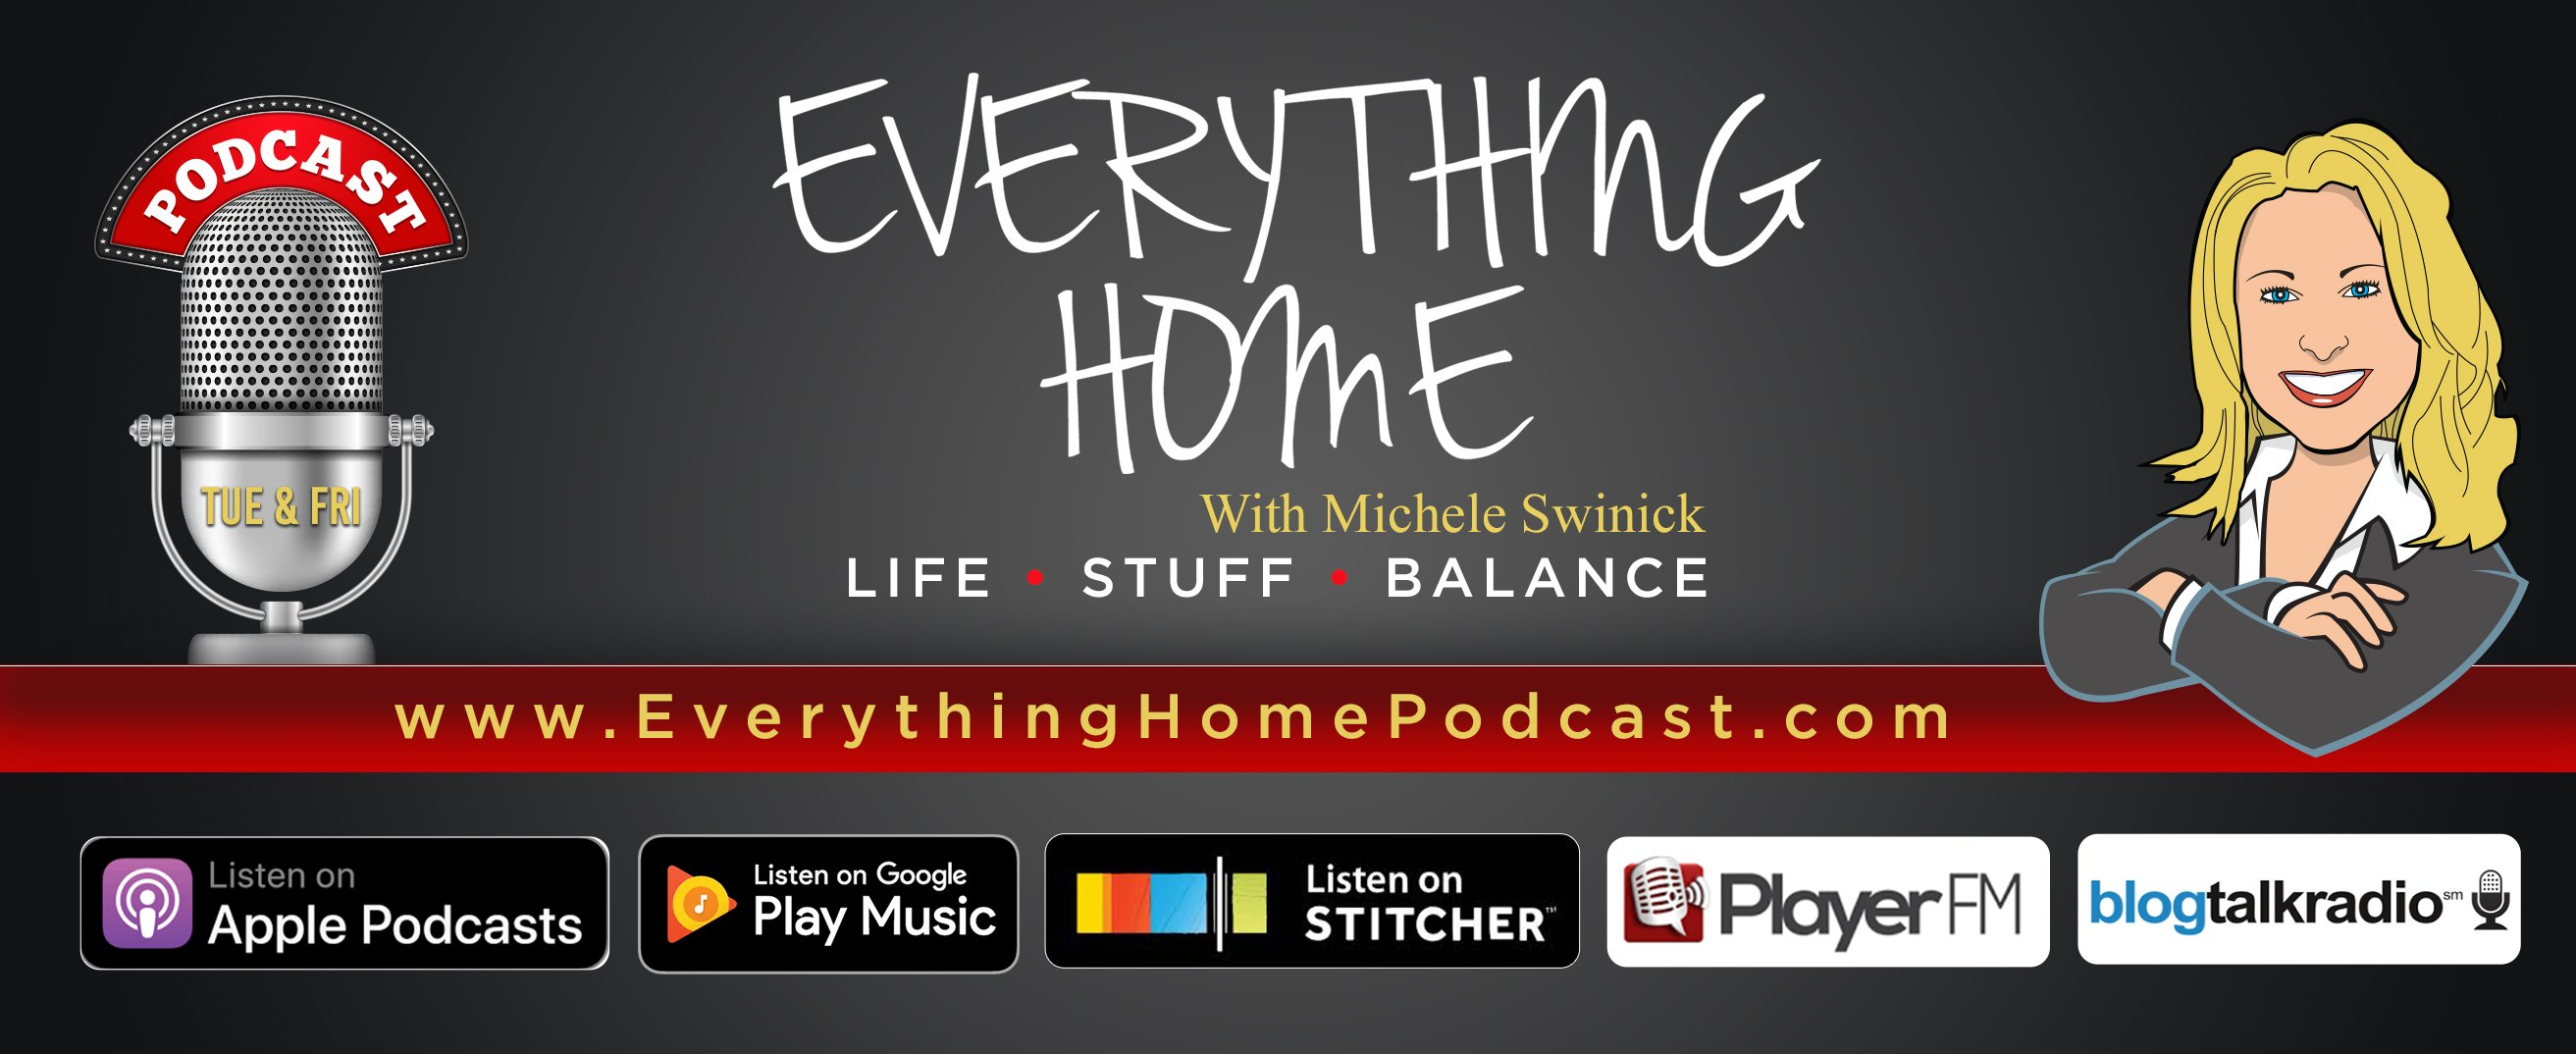 EVERYTHING HOME PODCAST - MICHELE SWINICK